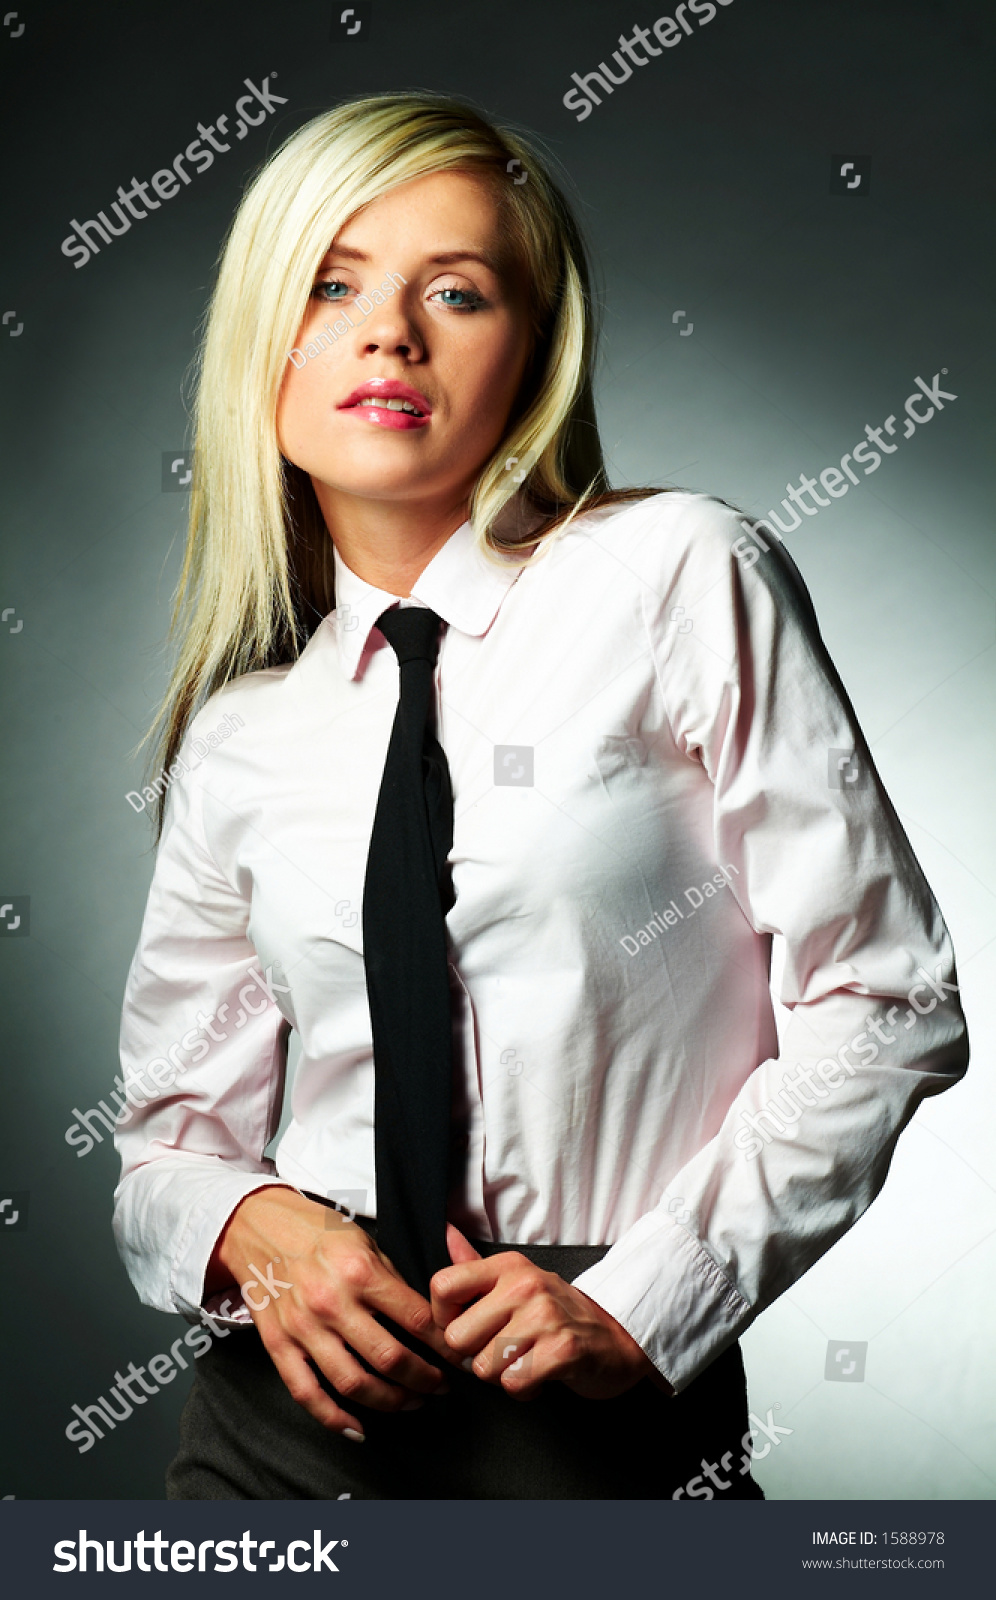 Oct 05,  · Other pics and clips - This forum is dedicated to all who enjoy the look of women wearing shirt and tie. Shirt and Tie This forum is dedicated to all who enjoy the look of women wearing shirt and tie.